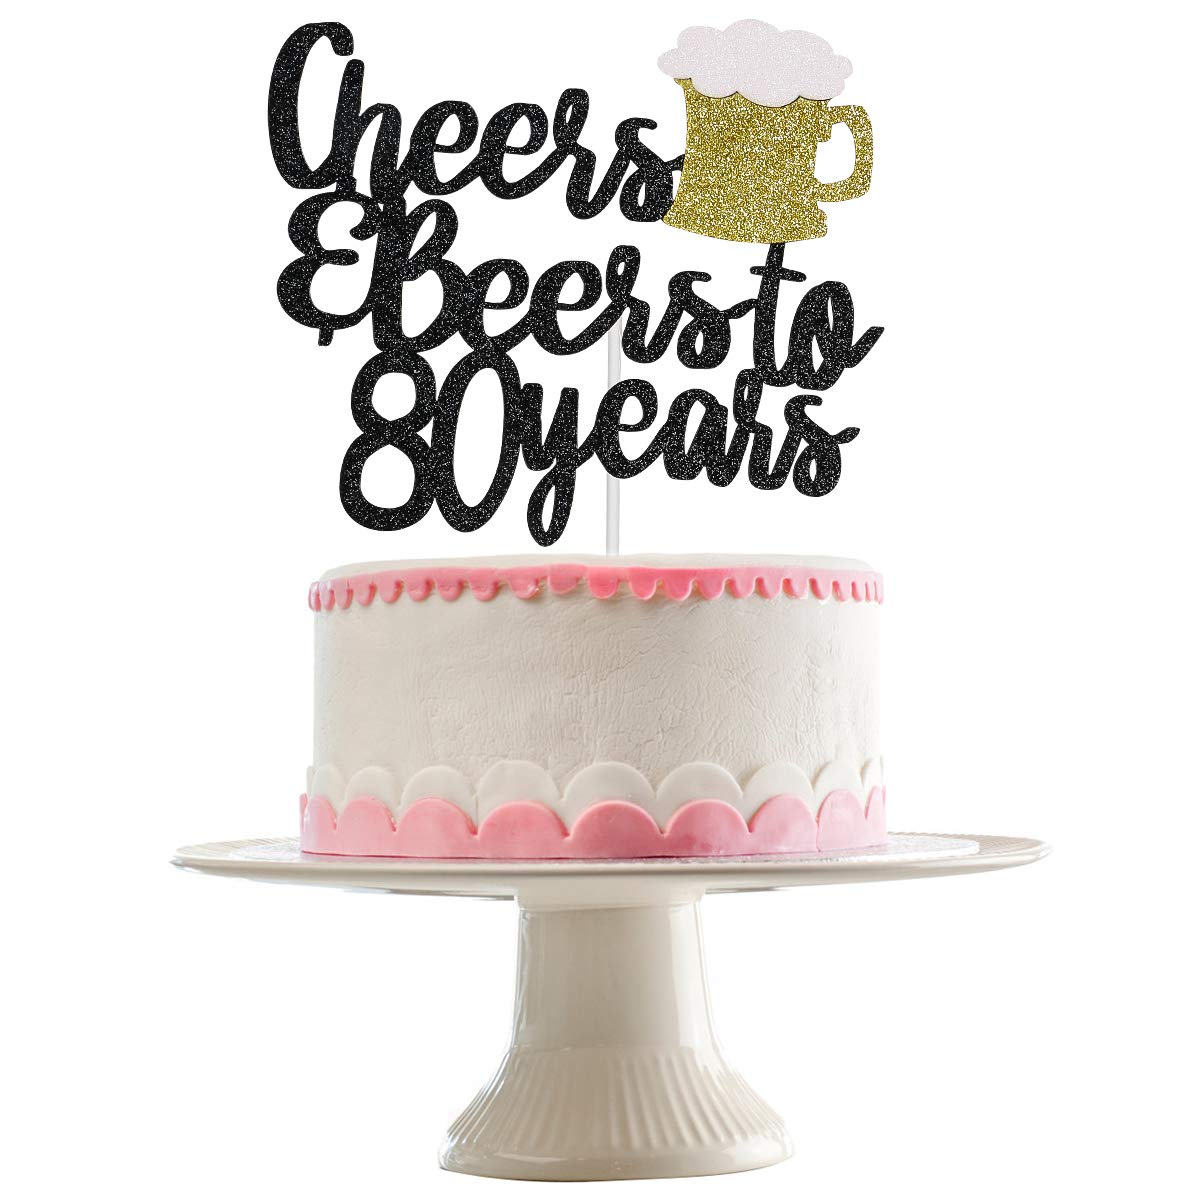 Black Glittery Cheers & Beers To 80 Years Cake Topper for 80th Birthday Party Wedding Anniversary Party Decoration Supplies